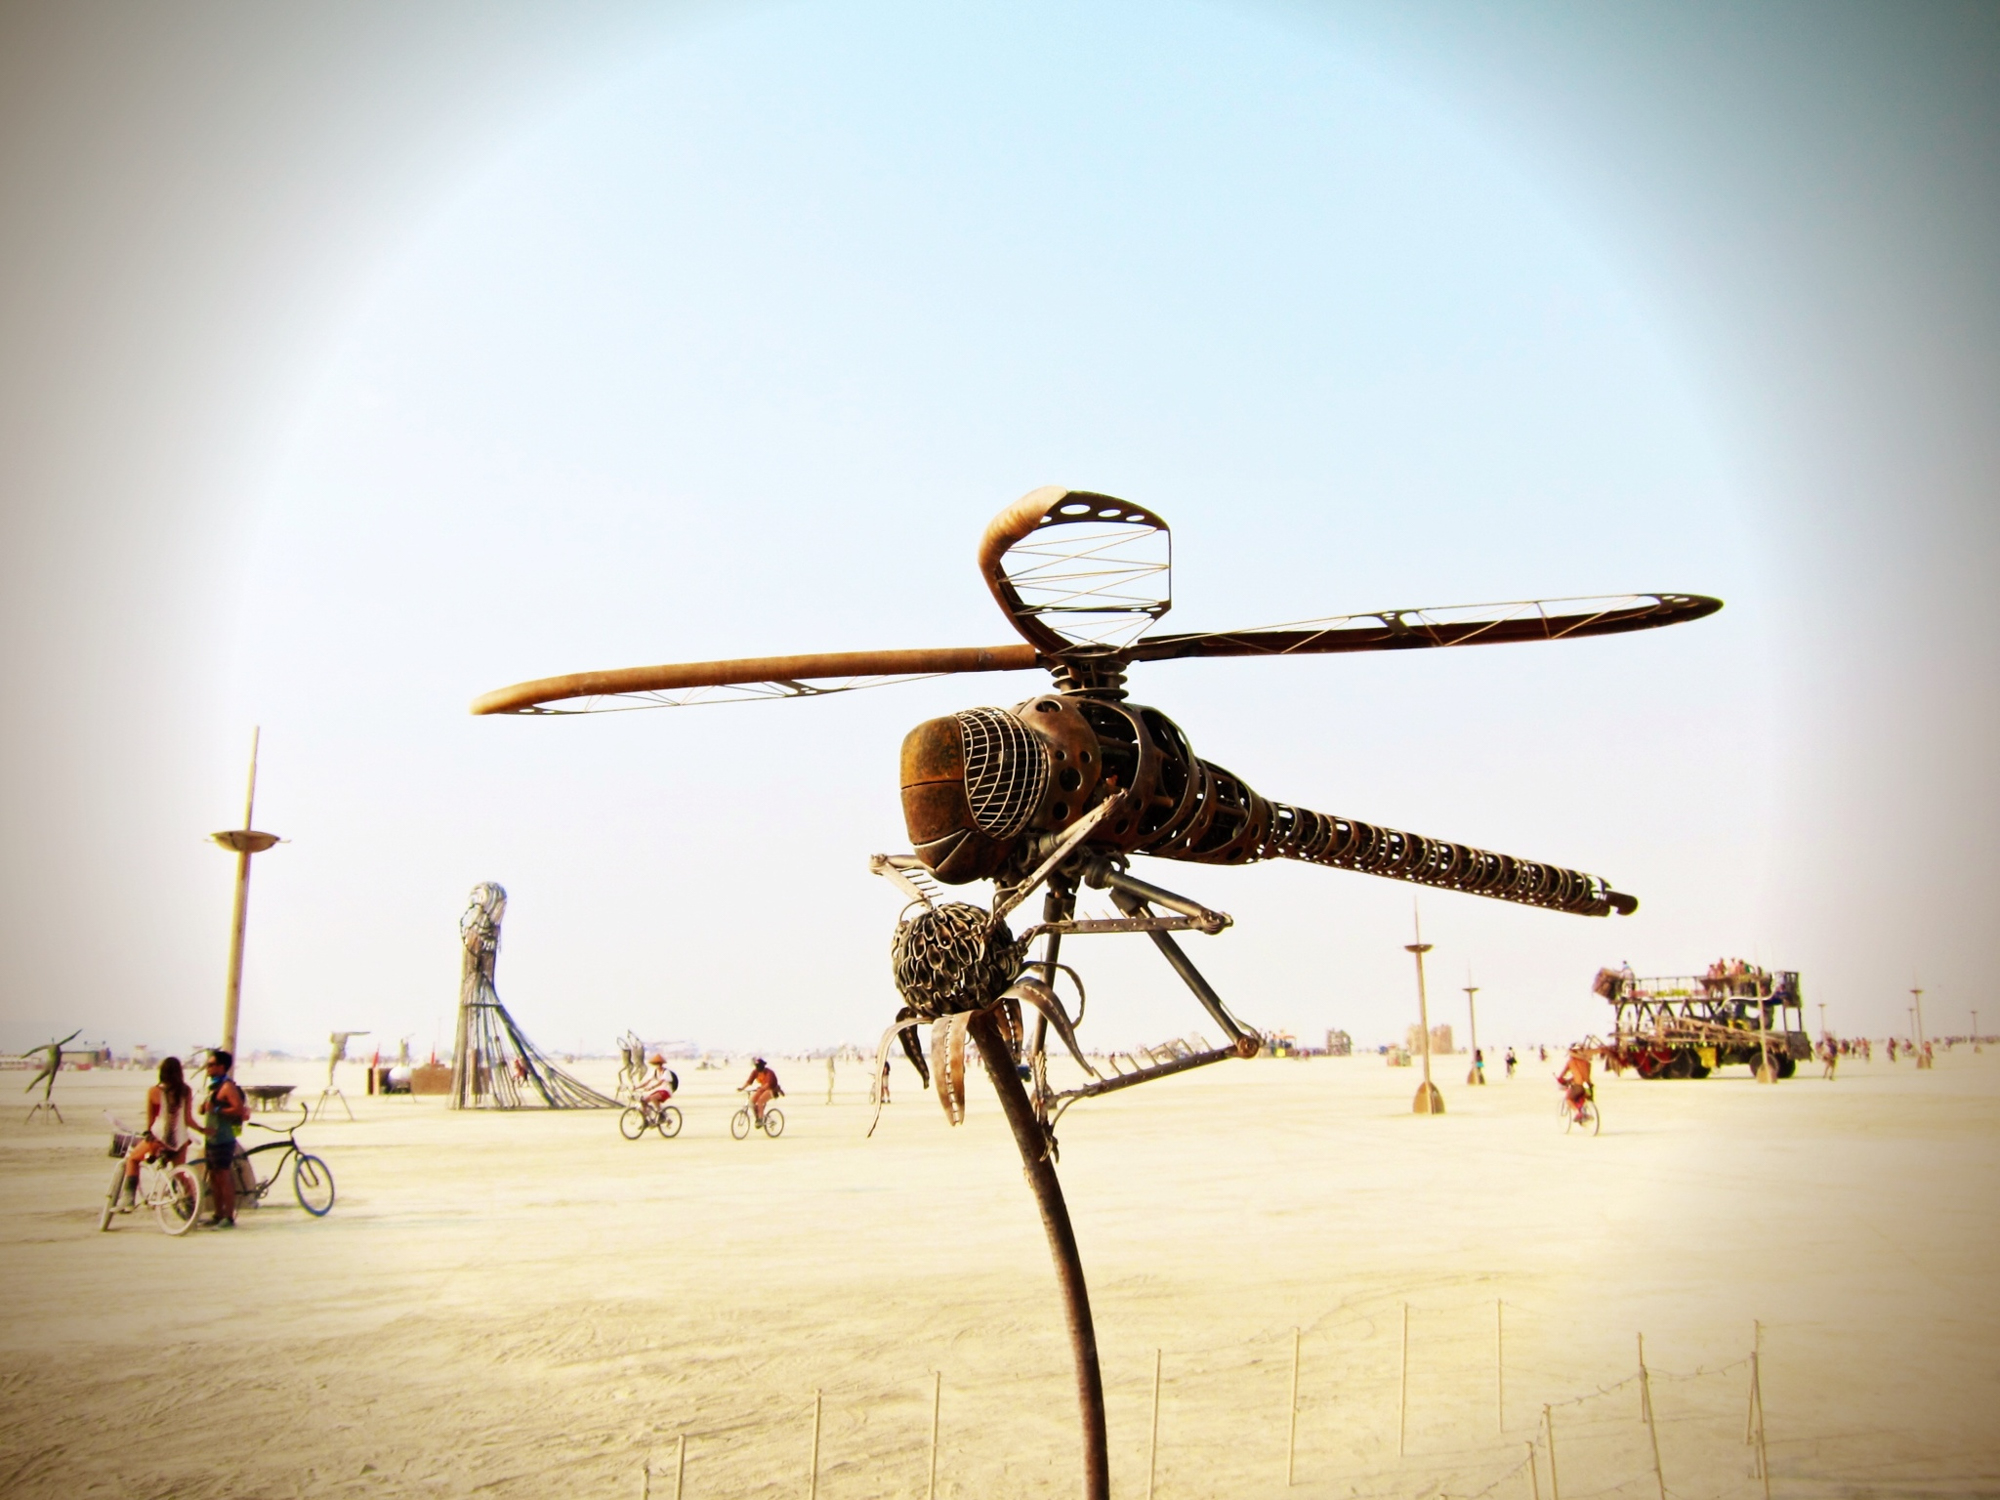 Dragonfly Art at Burning Man